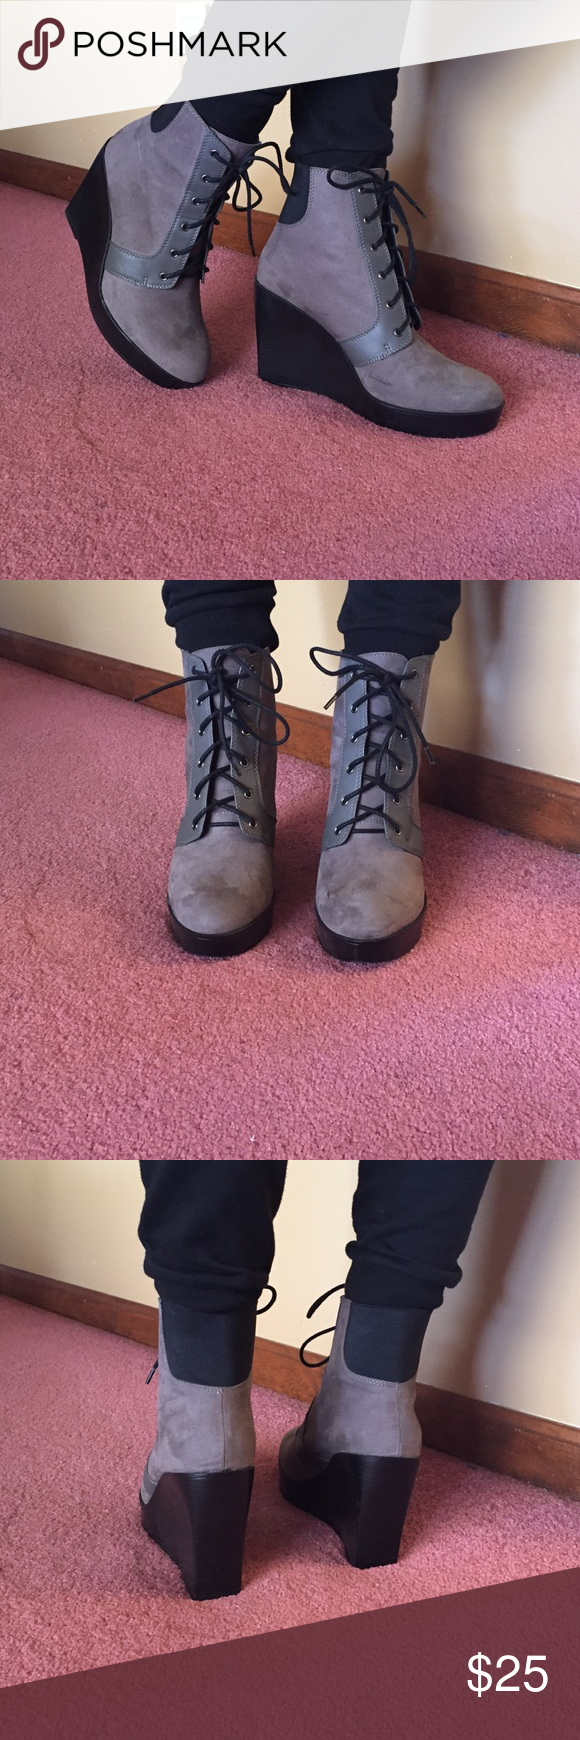 """Grey Suede Zara Wedge Boots Grey Suede Zara Wedge Boots. Size Euro 40. Lace up front with black elastic at back of ankle. Heel height is 4"""" with approximately 1"""" platform. Runs a little small... fits my size 81/2 foot. Zara Shoes Lace Up Boots"""